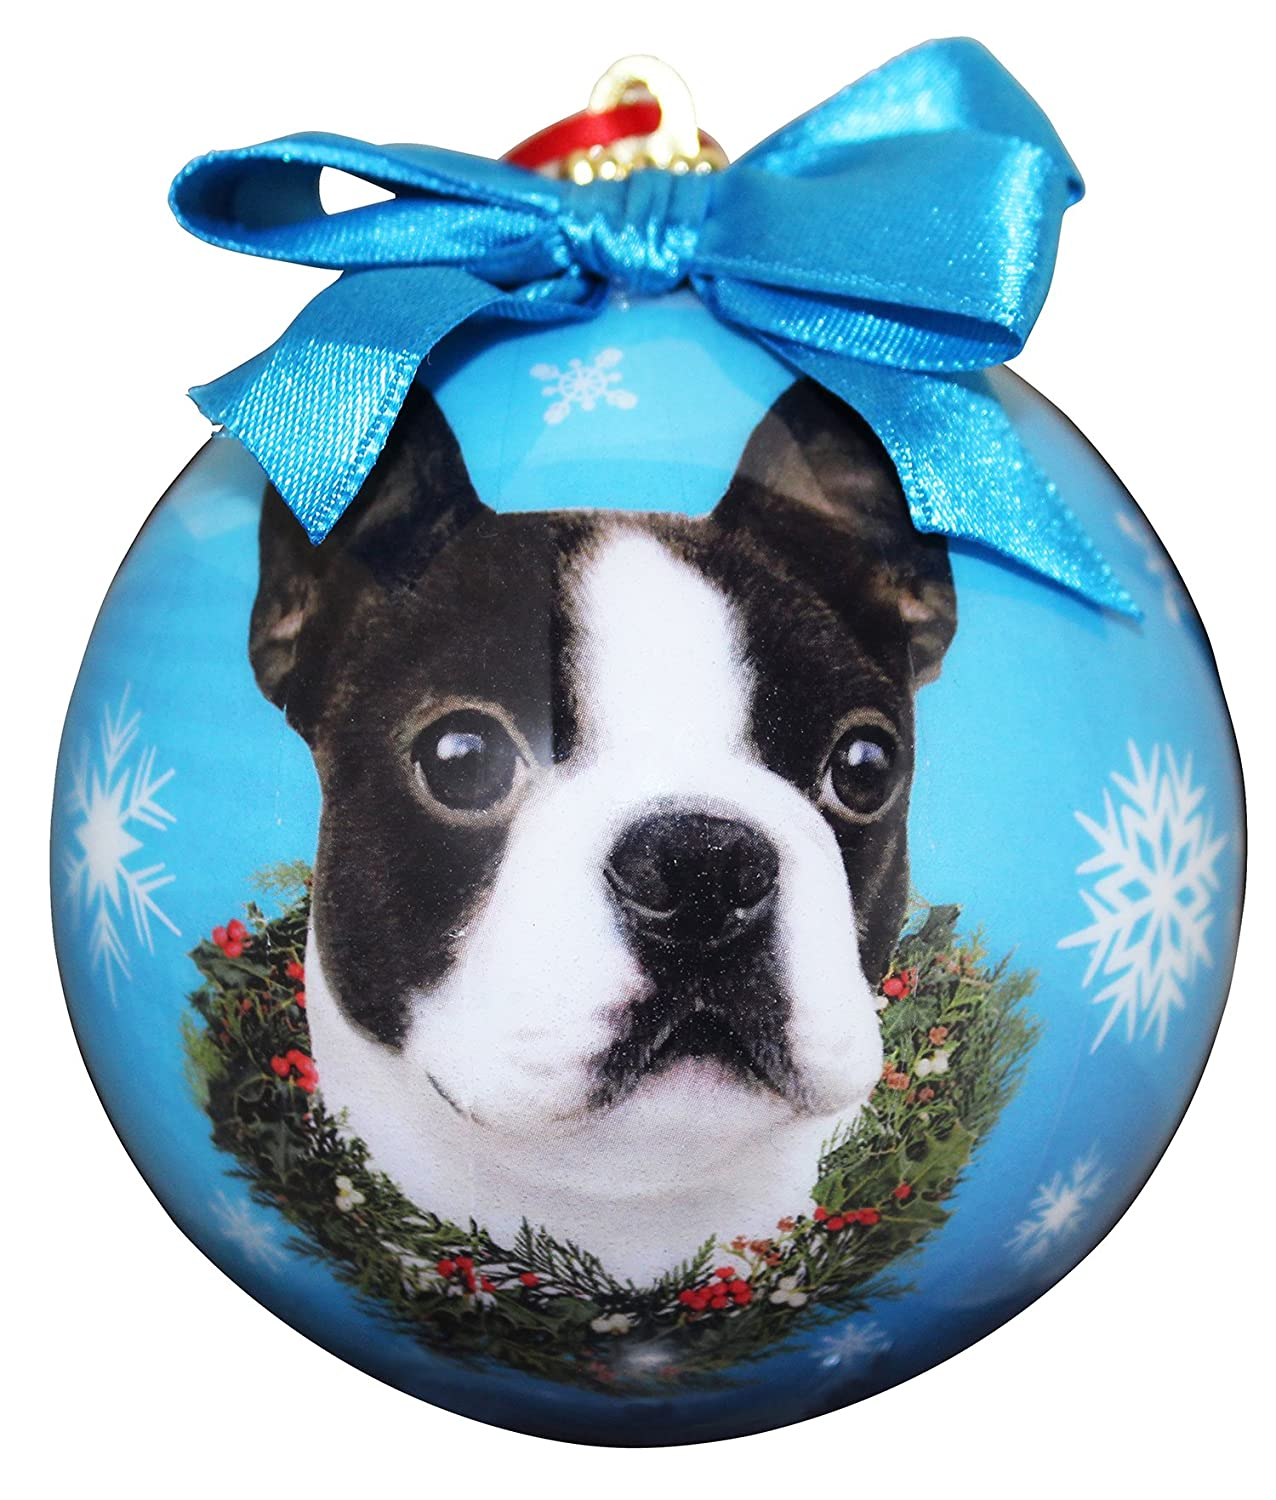 Basset Hound Christmas Ornament Shatter Proof Ball Easy To Personalize A Perfect Gift For Basset Hound Lovers E&S Pets